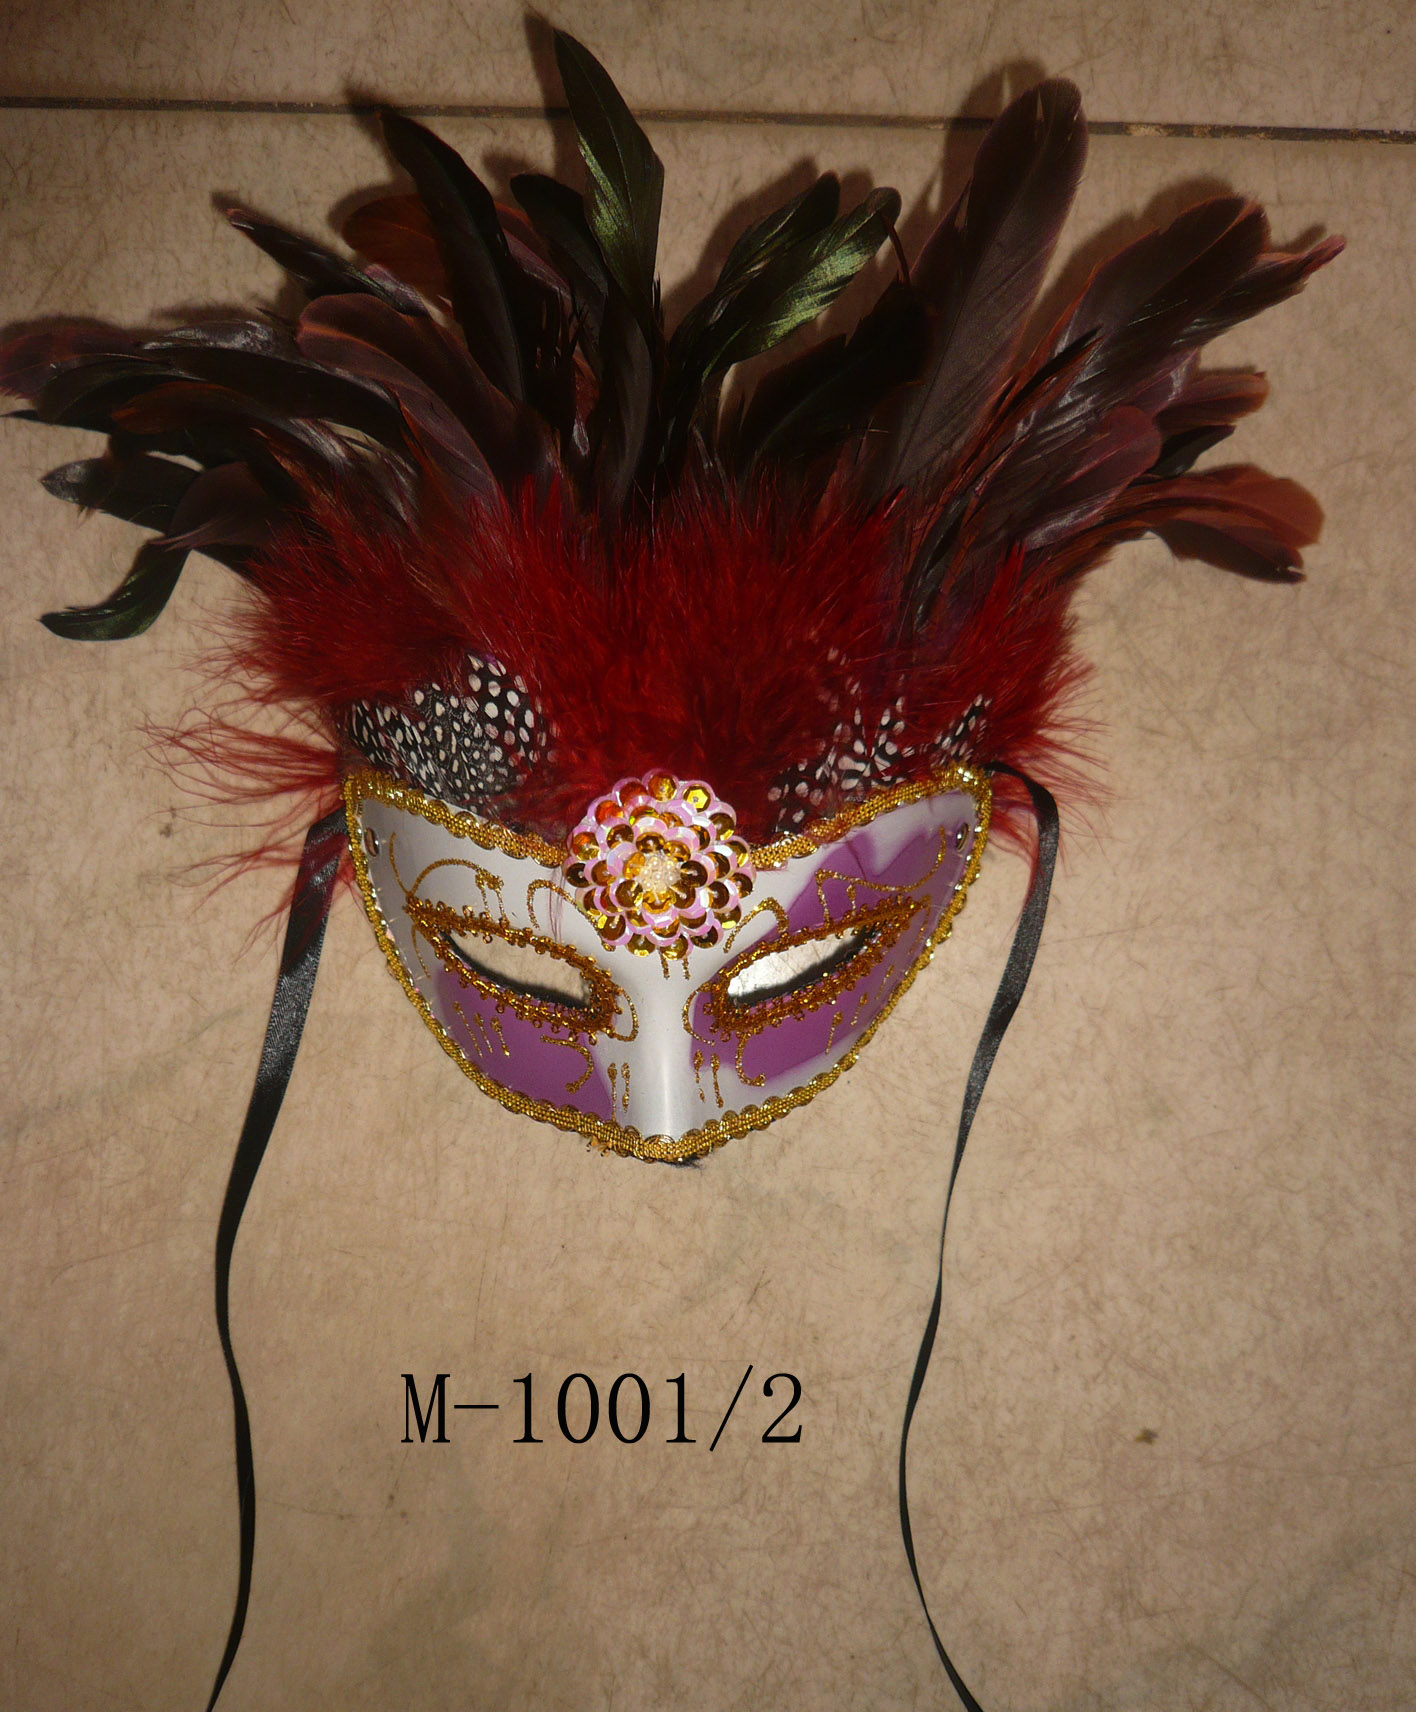 Cheap feather masks for sale - Made in China M-1001/2